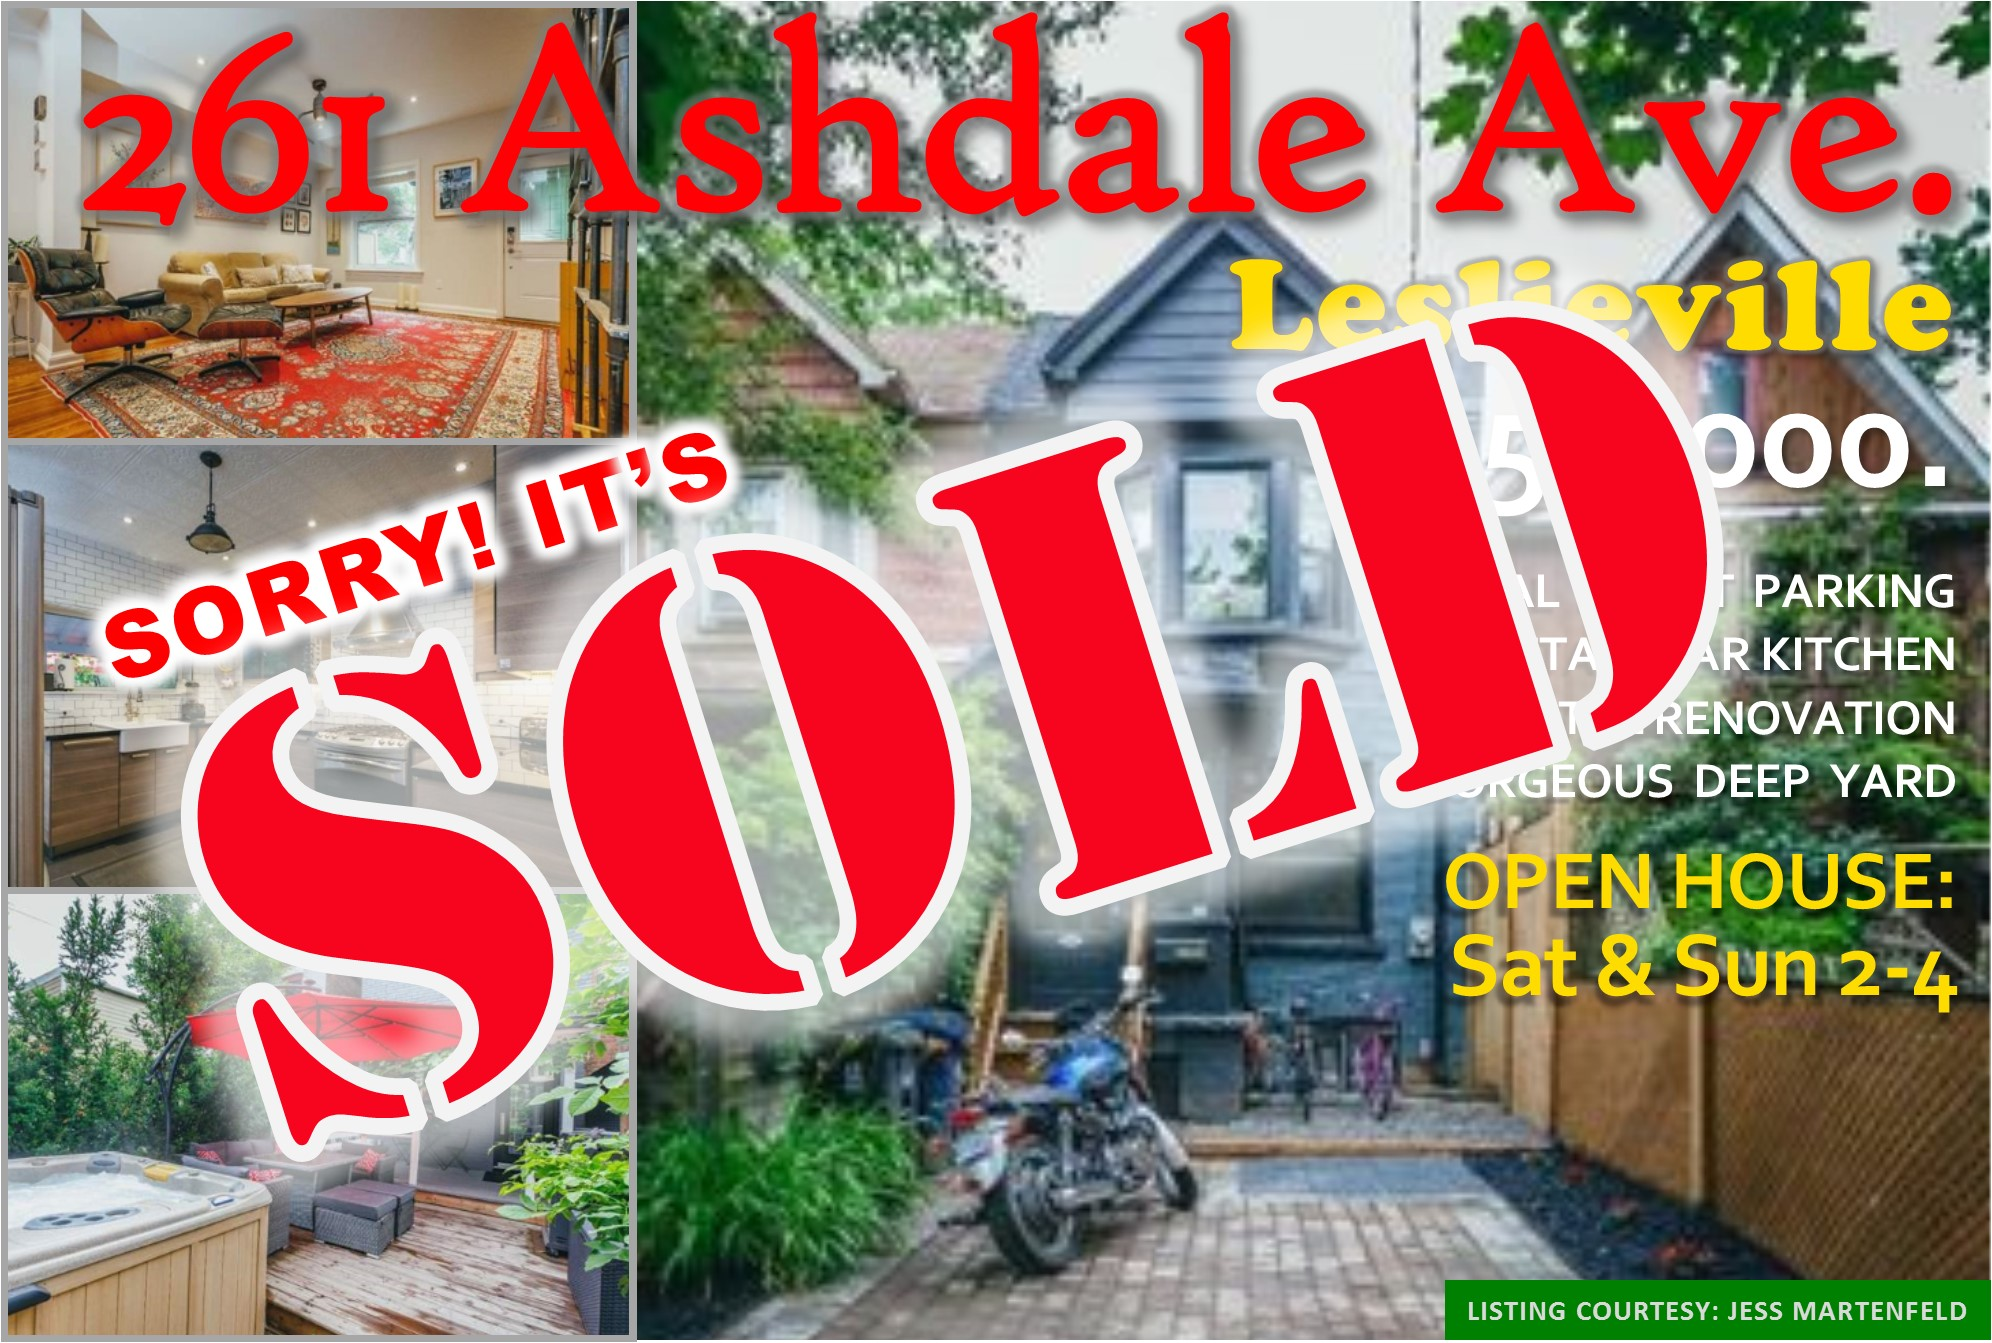 261 Ashdale Ave. UBERTOR BLOG SOLD.jpg